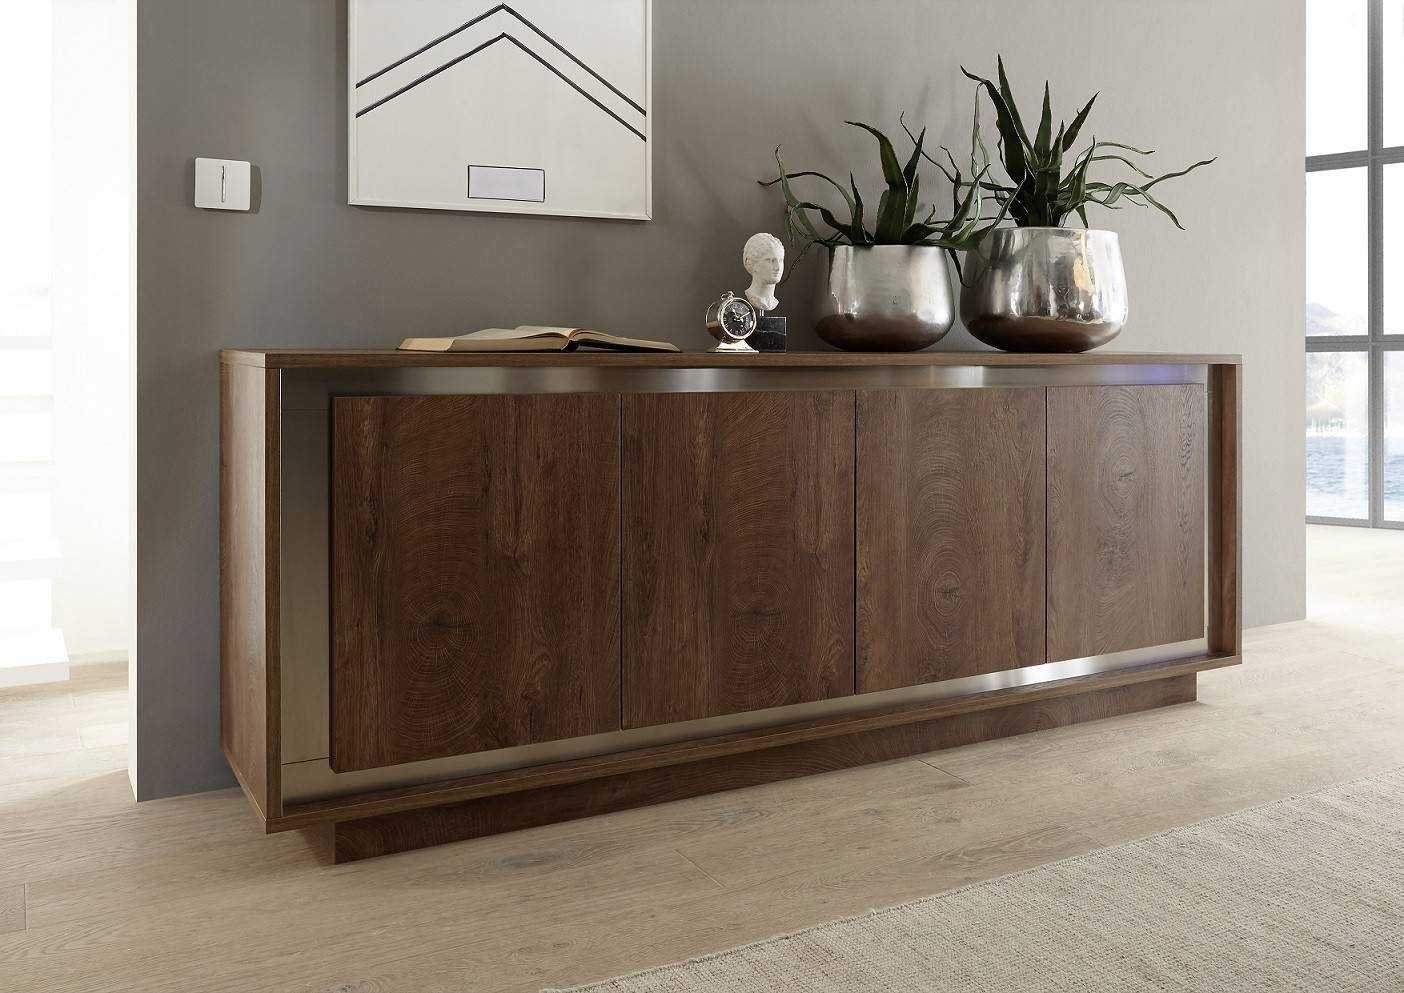 Modern Sideboards Uk - Sena Home Furniture within Modern Contemporary Sideboards (Image 23 of 30)